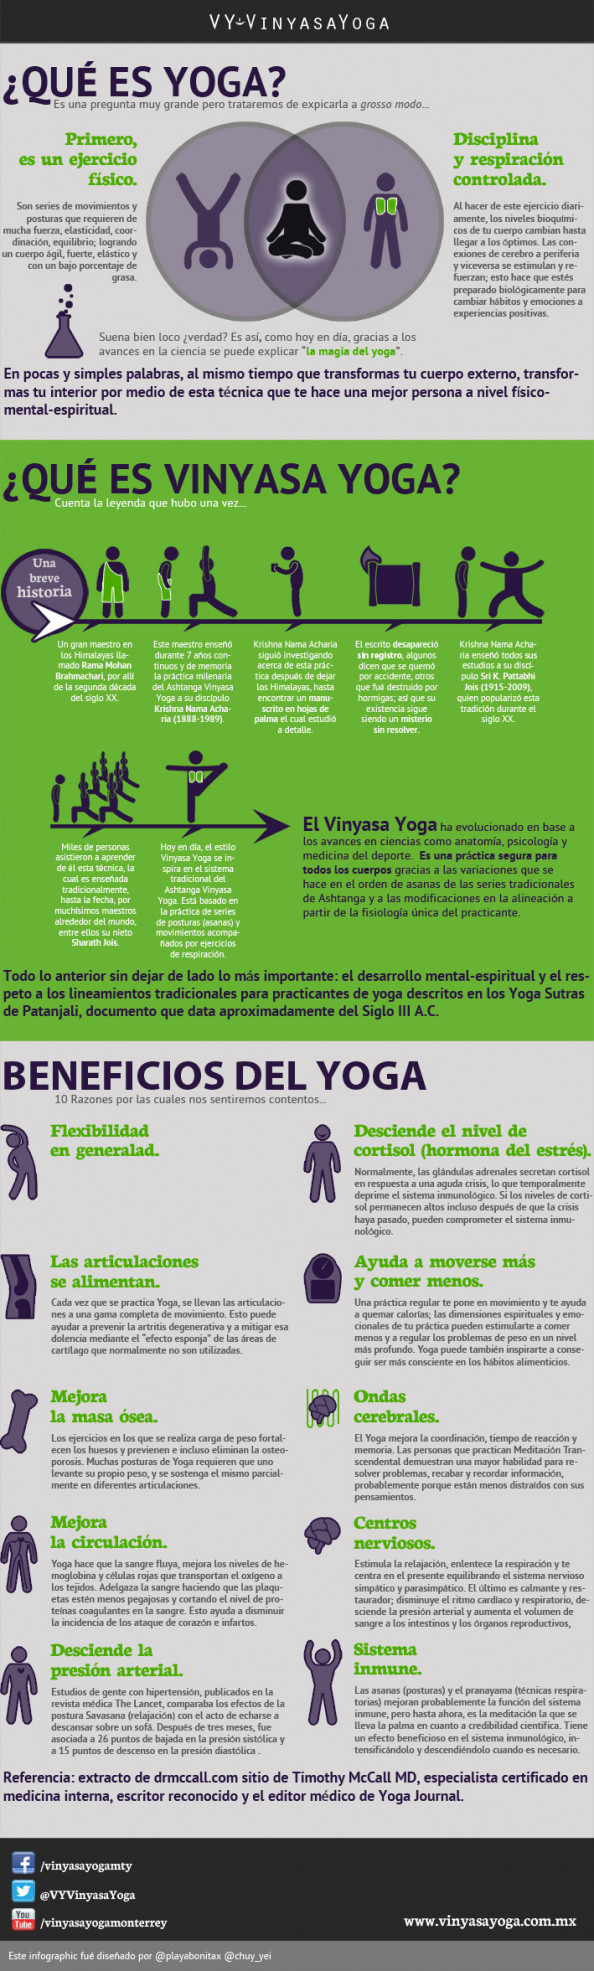 Qu es Yoga? Infographic